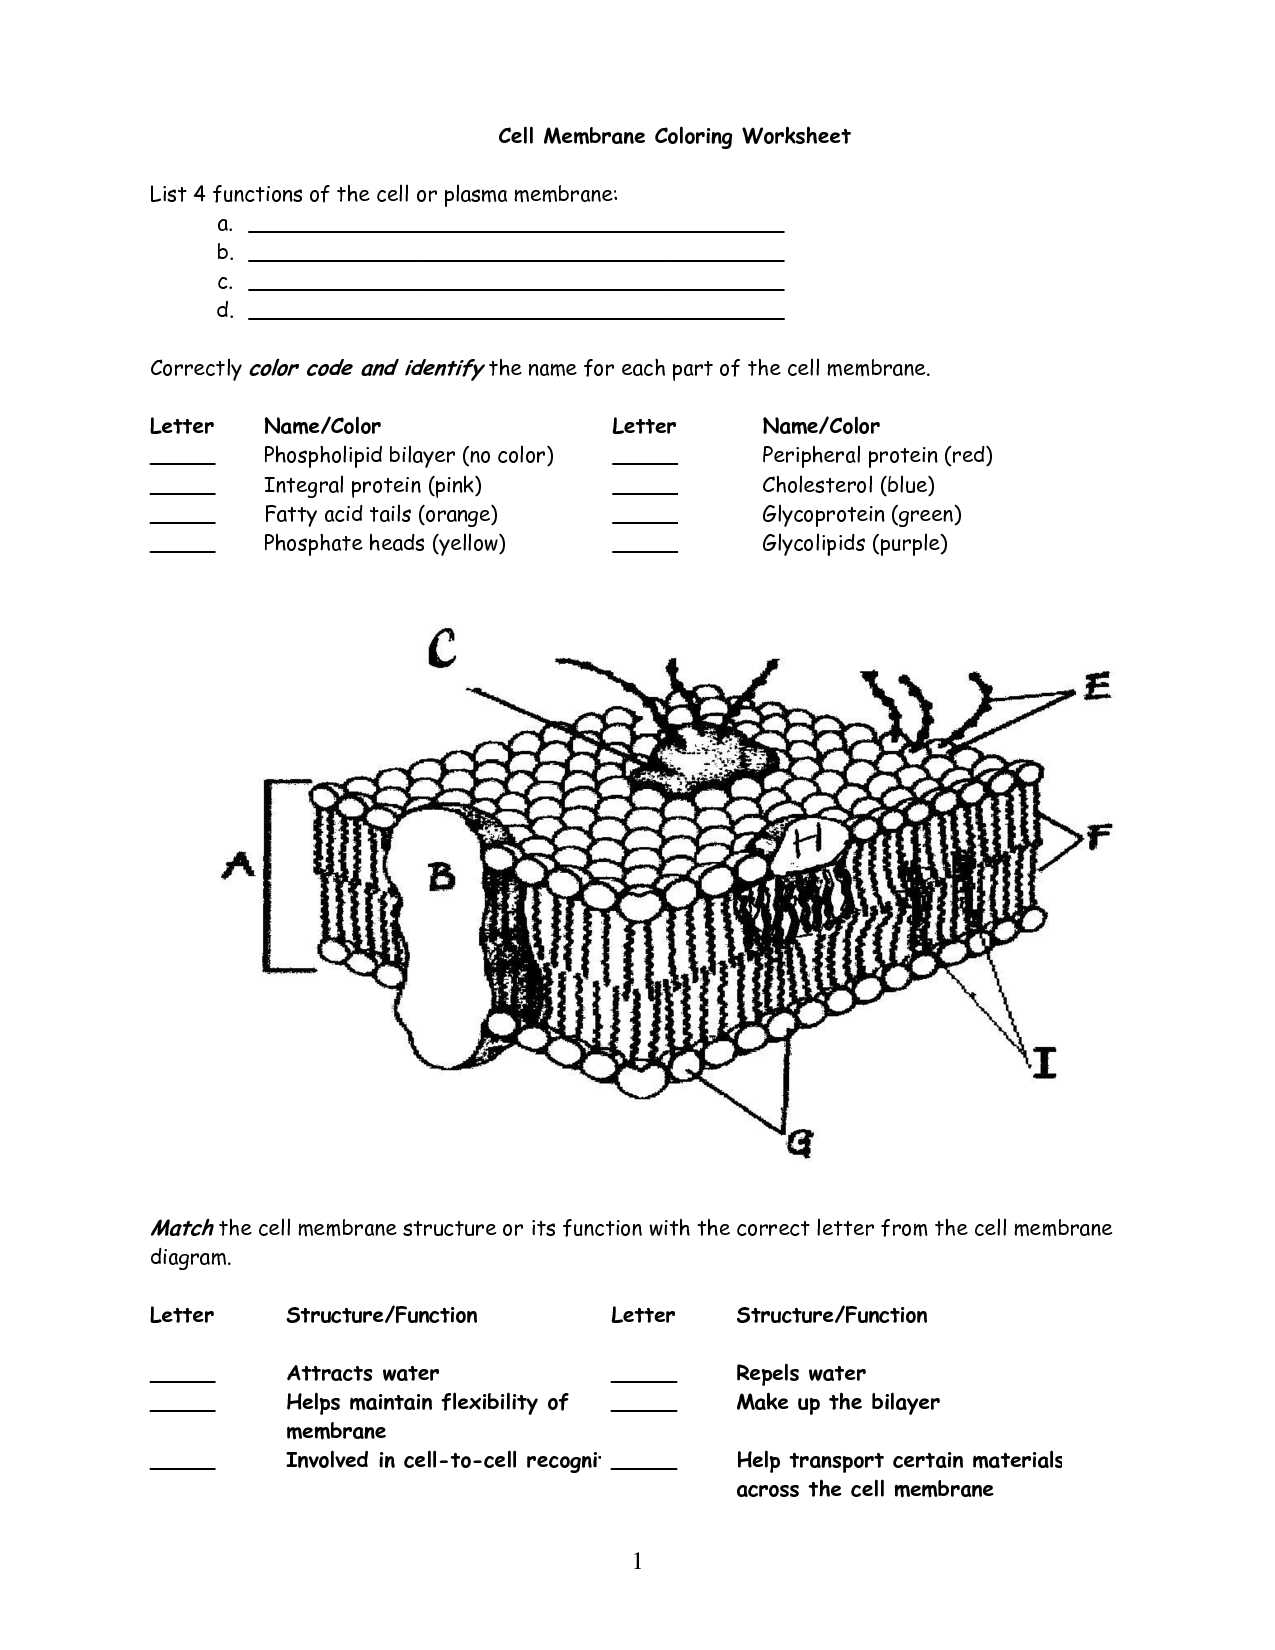 Cellular Structure and Function Worksheet and with Cell Membrane Coloring Worksheet Coloring Pages Answers